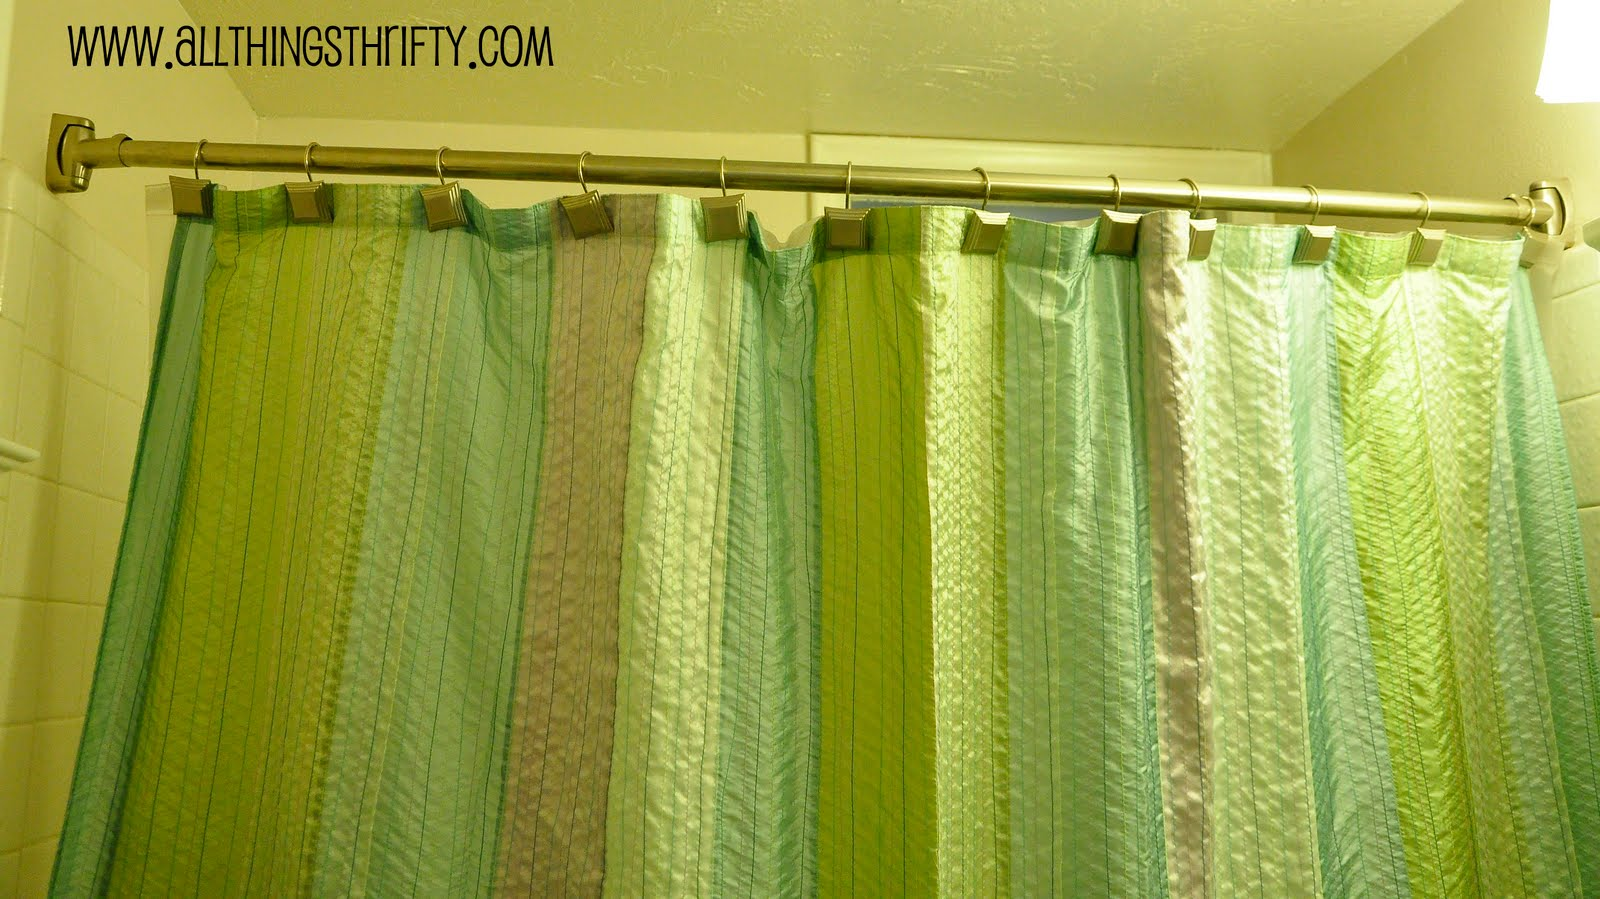 Curved Shower Curtains Rods Curved Shower Curtain Rod All Things Thrifty